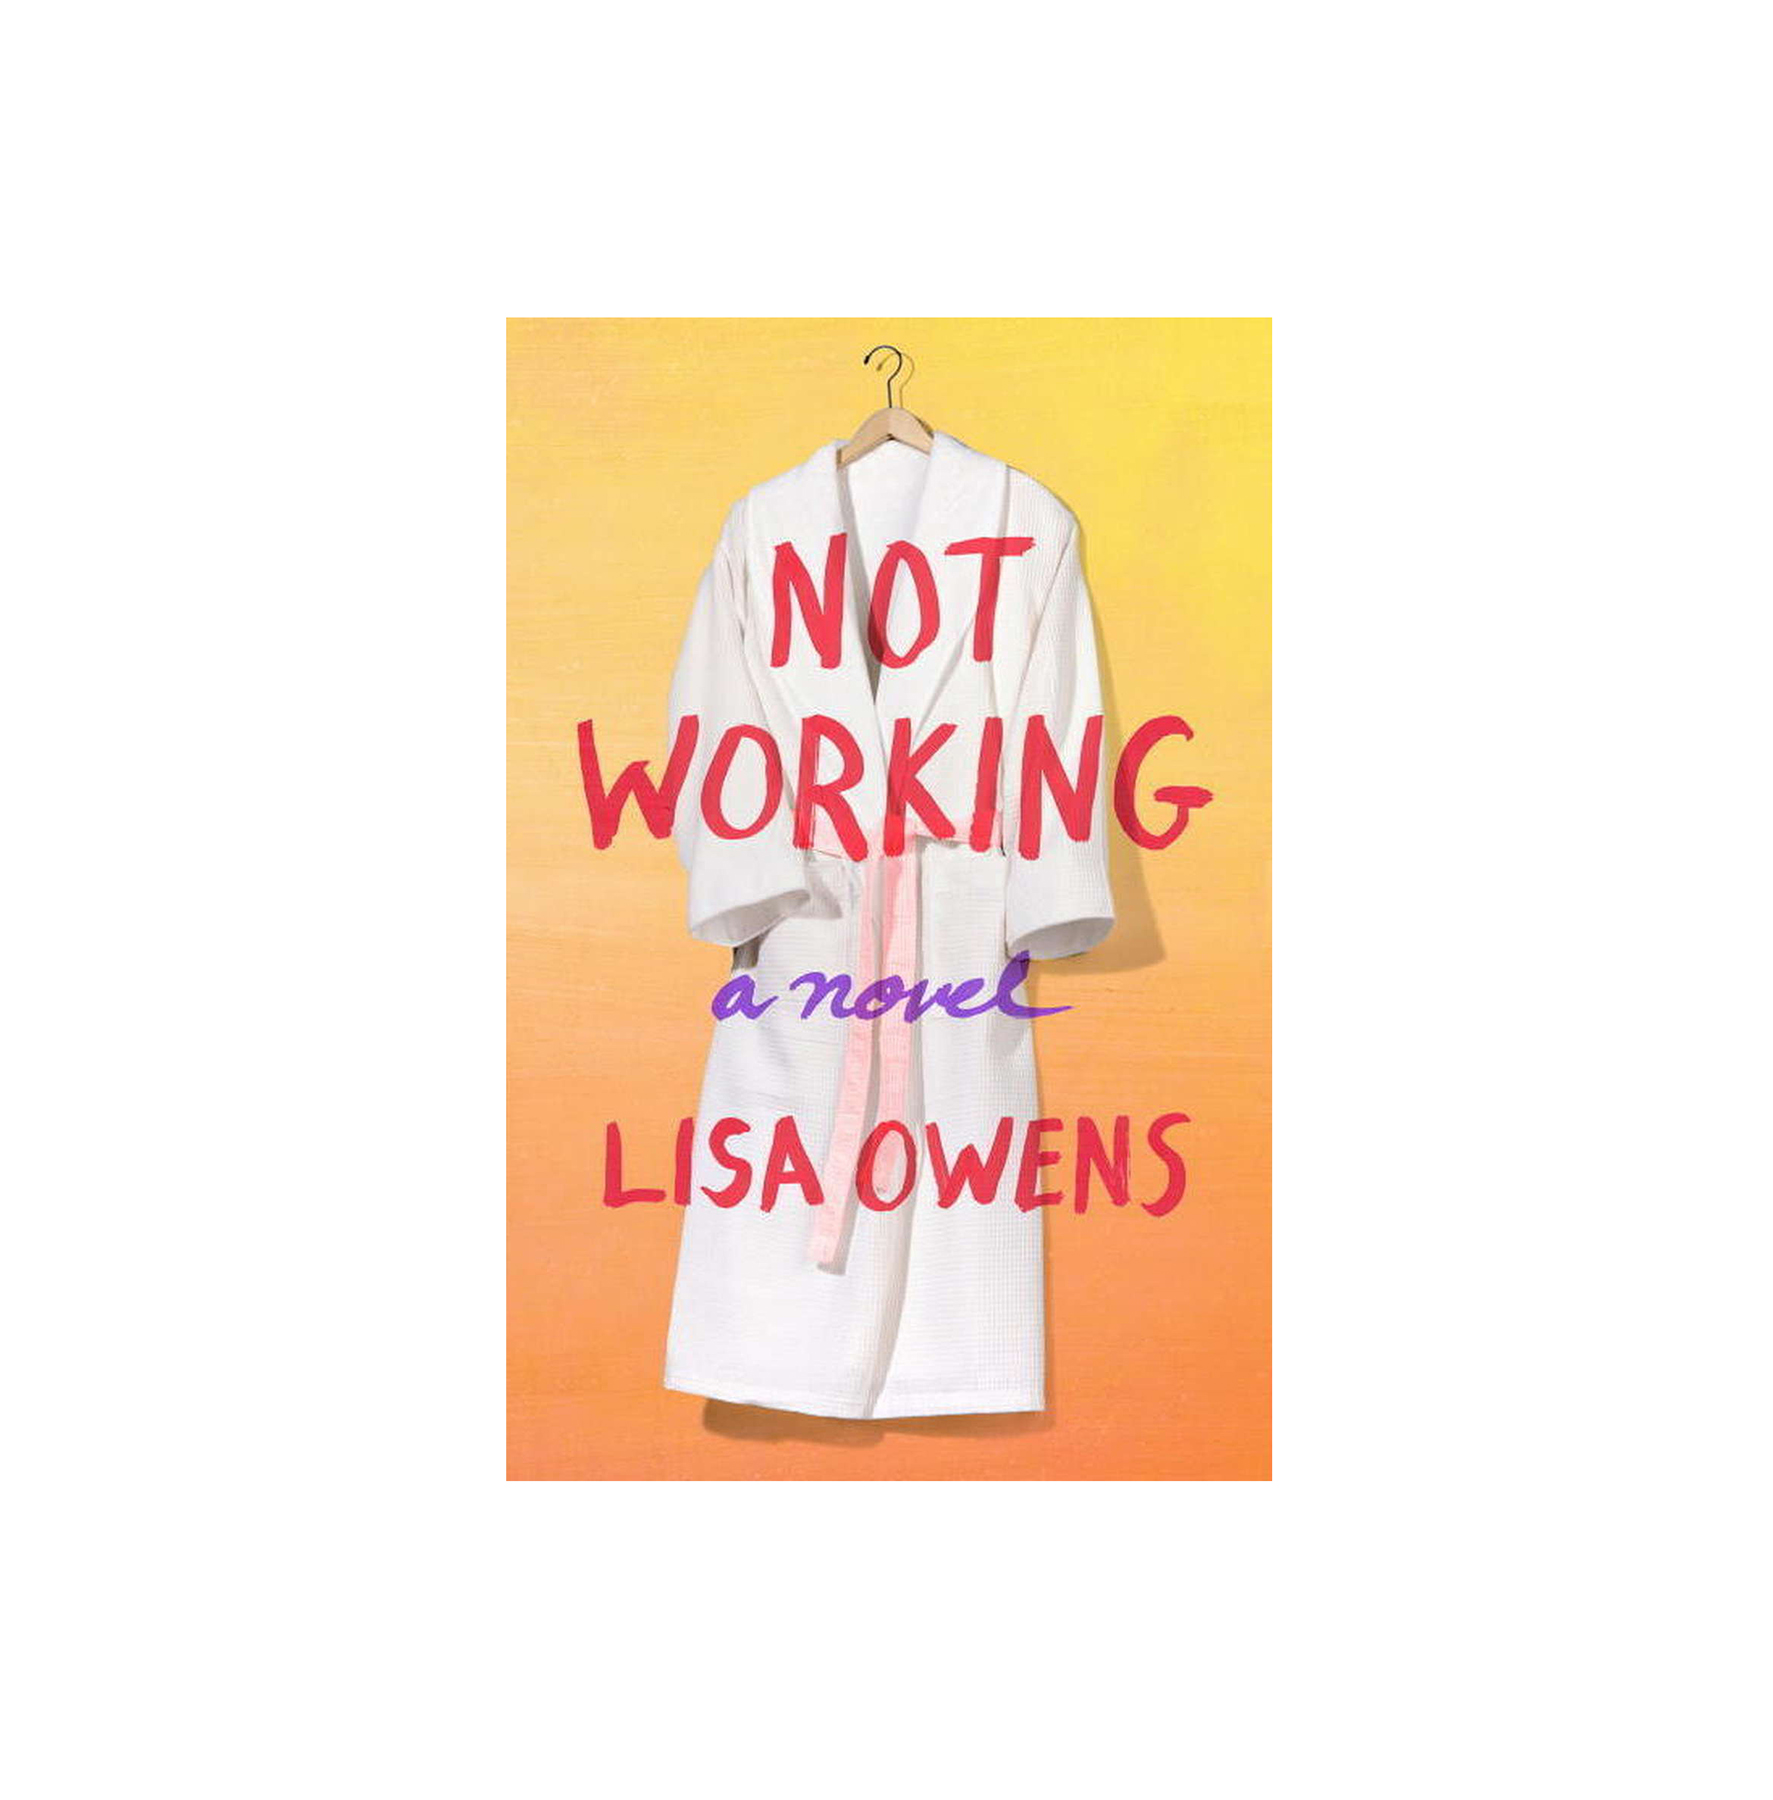 Not Working, by Lisa Owens